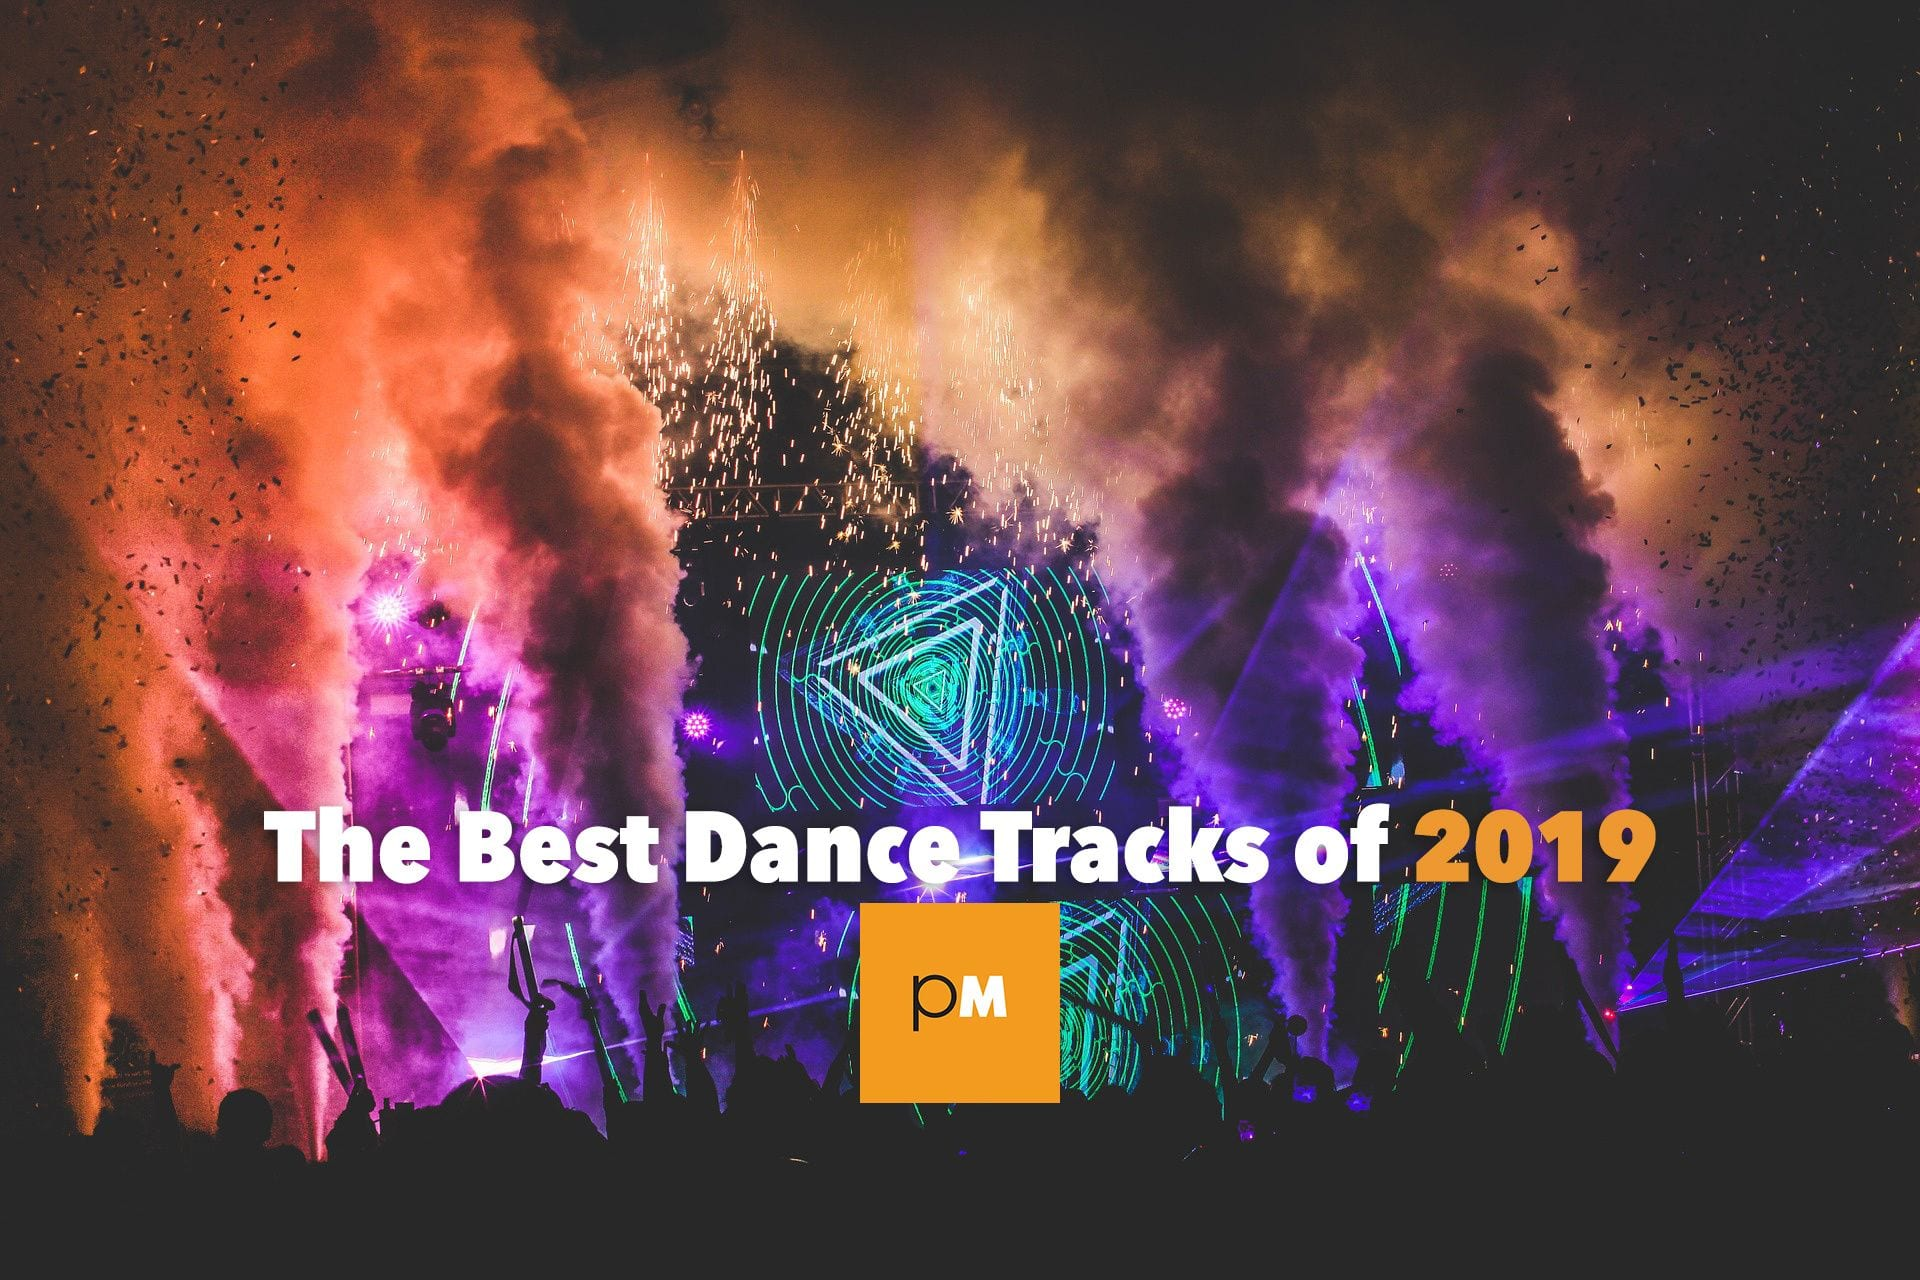 The Best Dance Tracks of 2019